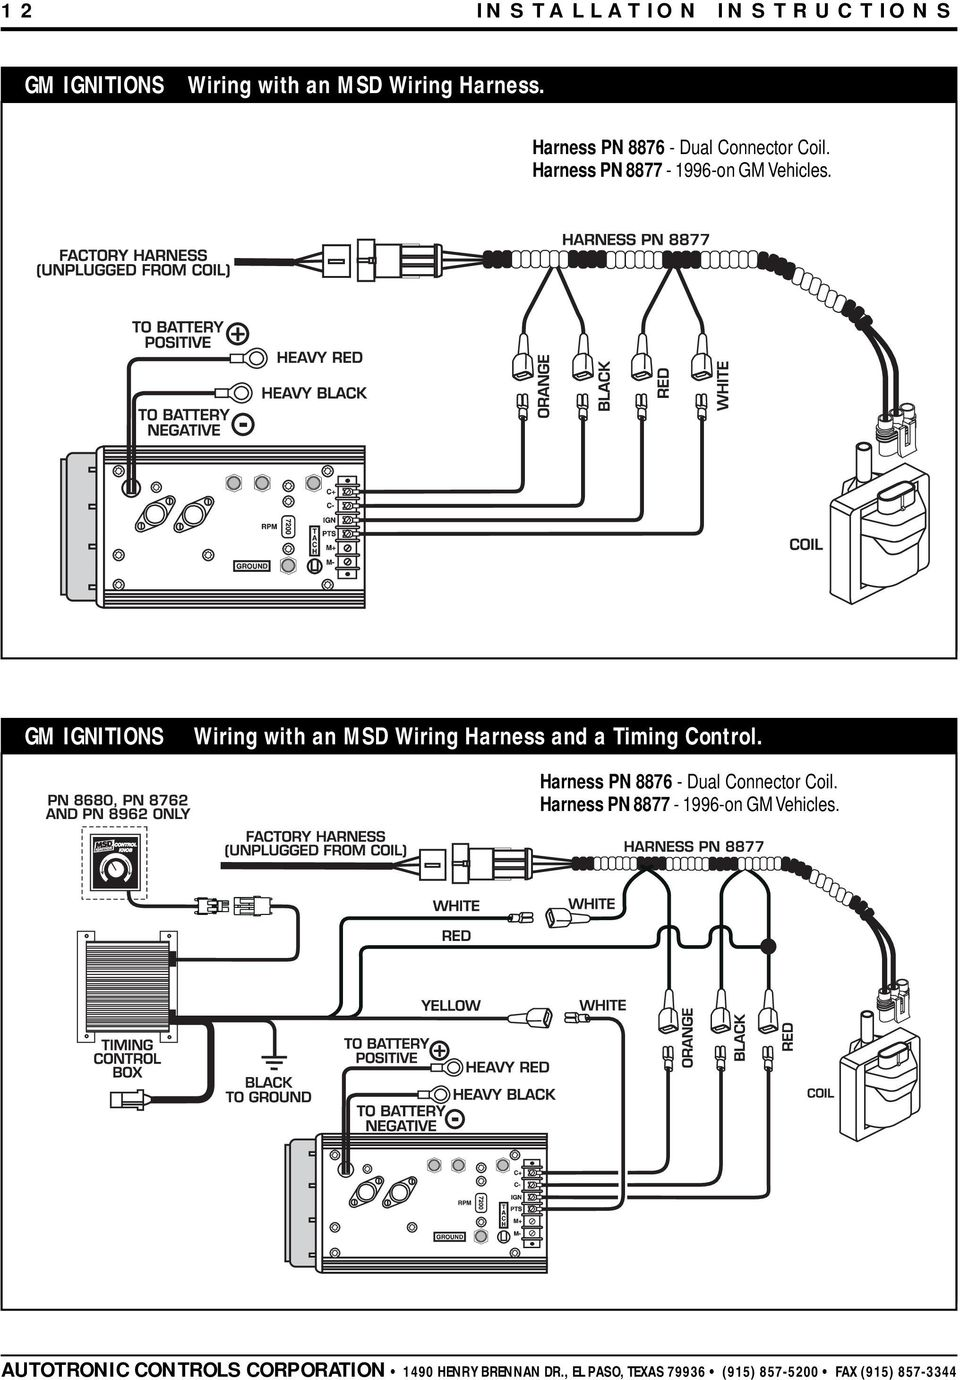 MSD 7AL-2 Ignition PN 7220, 7224, 7226, PDF